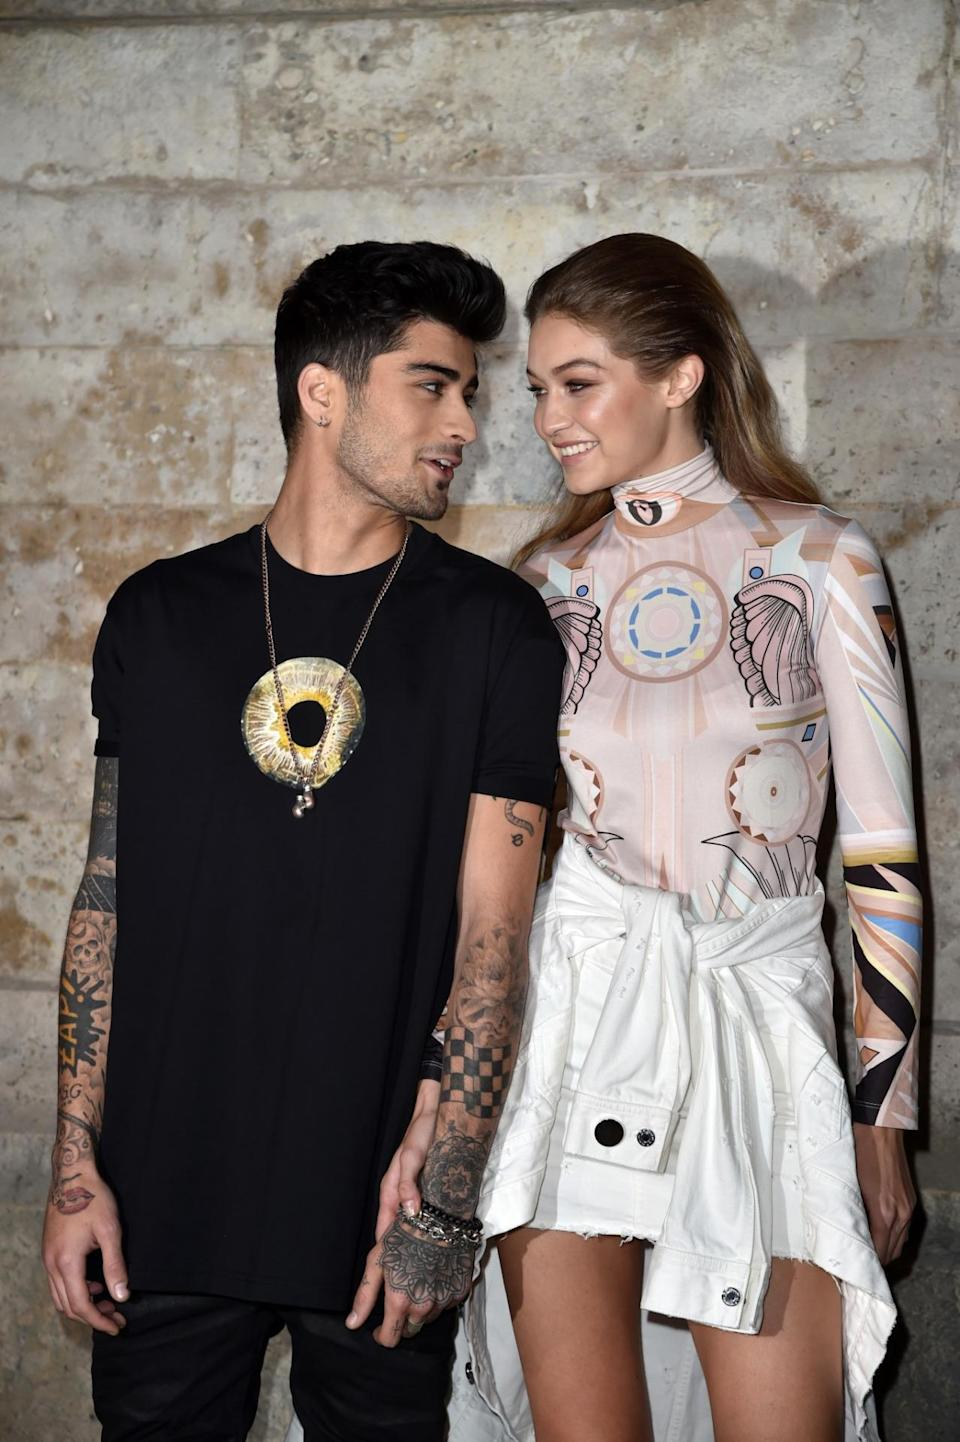 <p>It will be Gigi's second time walking the VS runway. She's still yet to earn her wings but who wants to bet that uber famous boyfriend Zayn Malik will be in the front row waiting to cheer her on? The pair have been dating for almost a year and now happily appear in public together after a few months of privacy. <i>[Photo: Getty]</i> </p>